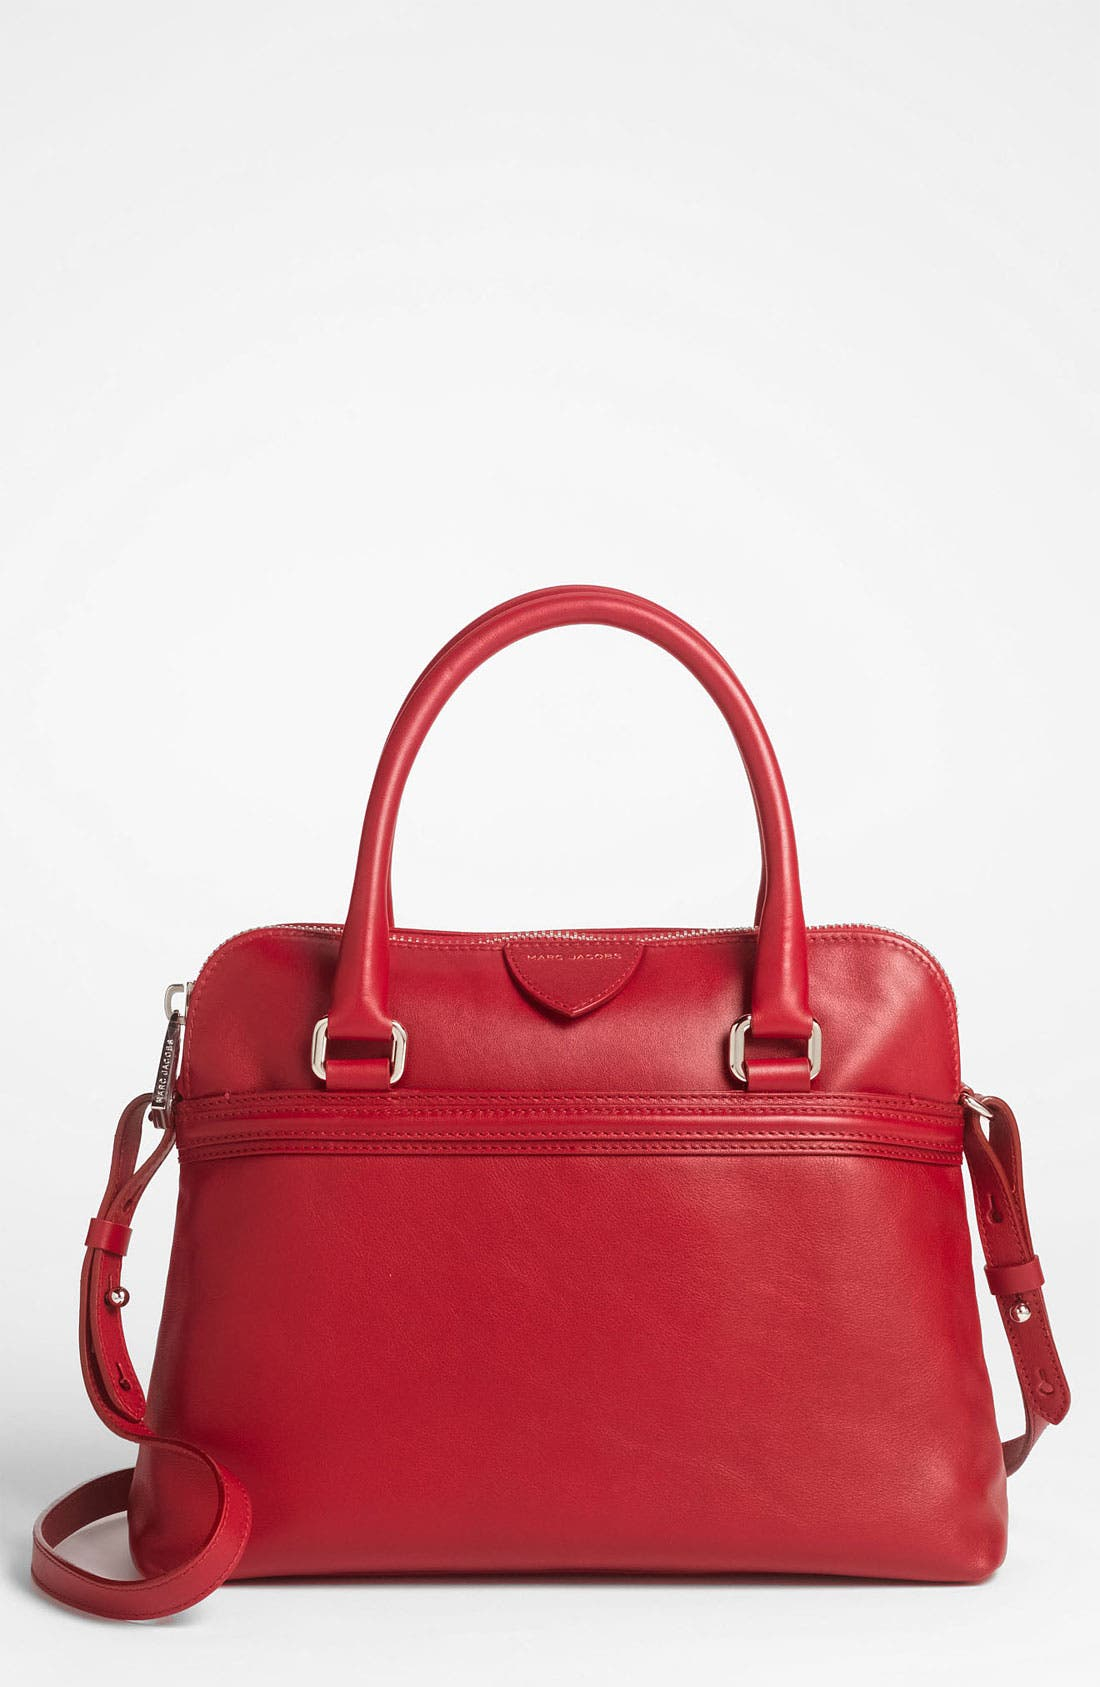 Main Image - MARC JACOBS 'Raleigh' Leather Satchel